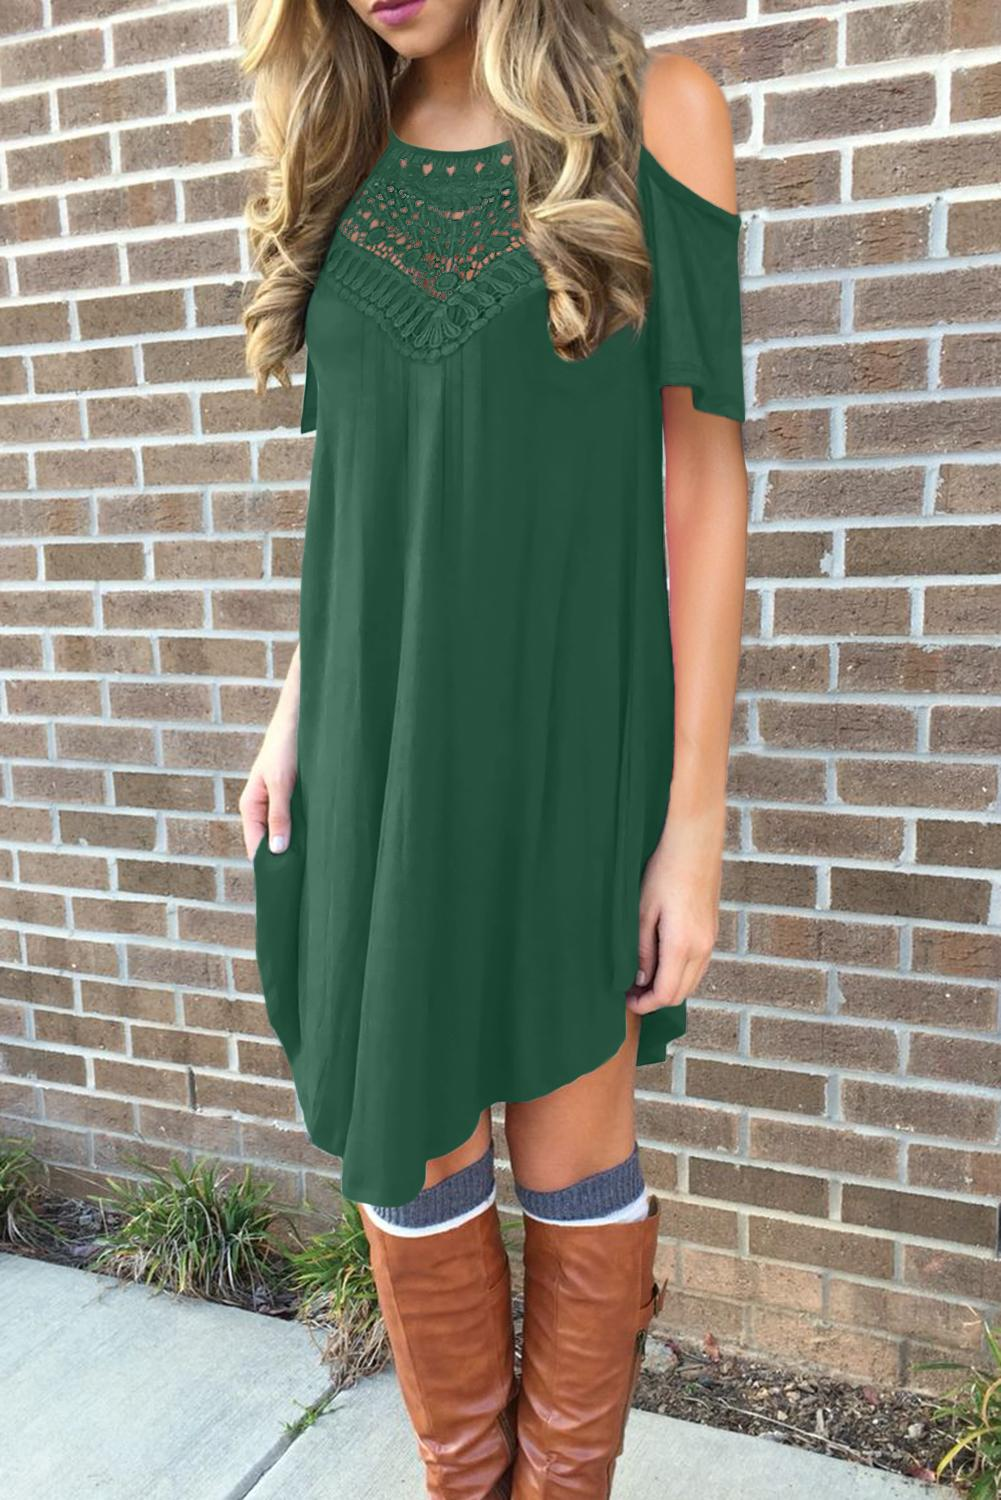 Green Lace Hollow-out Cold Shoulder Casual Dress